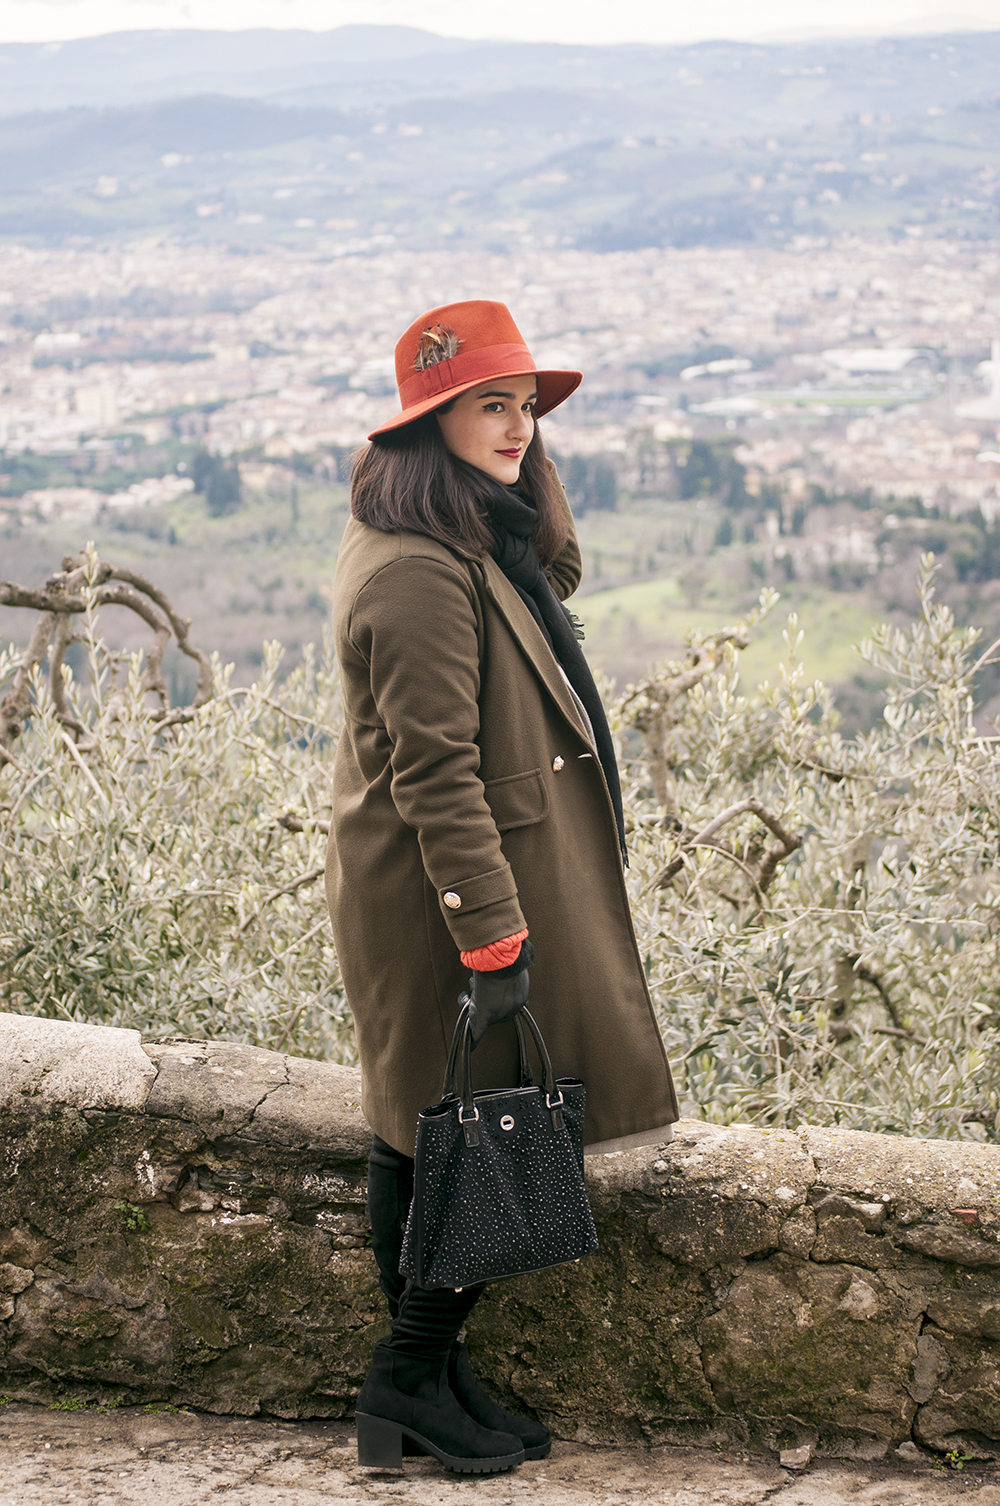 somethingfashion, firenze italia spain valencia blogger, fashionblogger hat outfit winter, tuscany fiesole views, hugoboss max mara diffusione tessile vintage